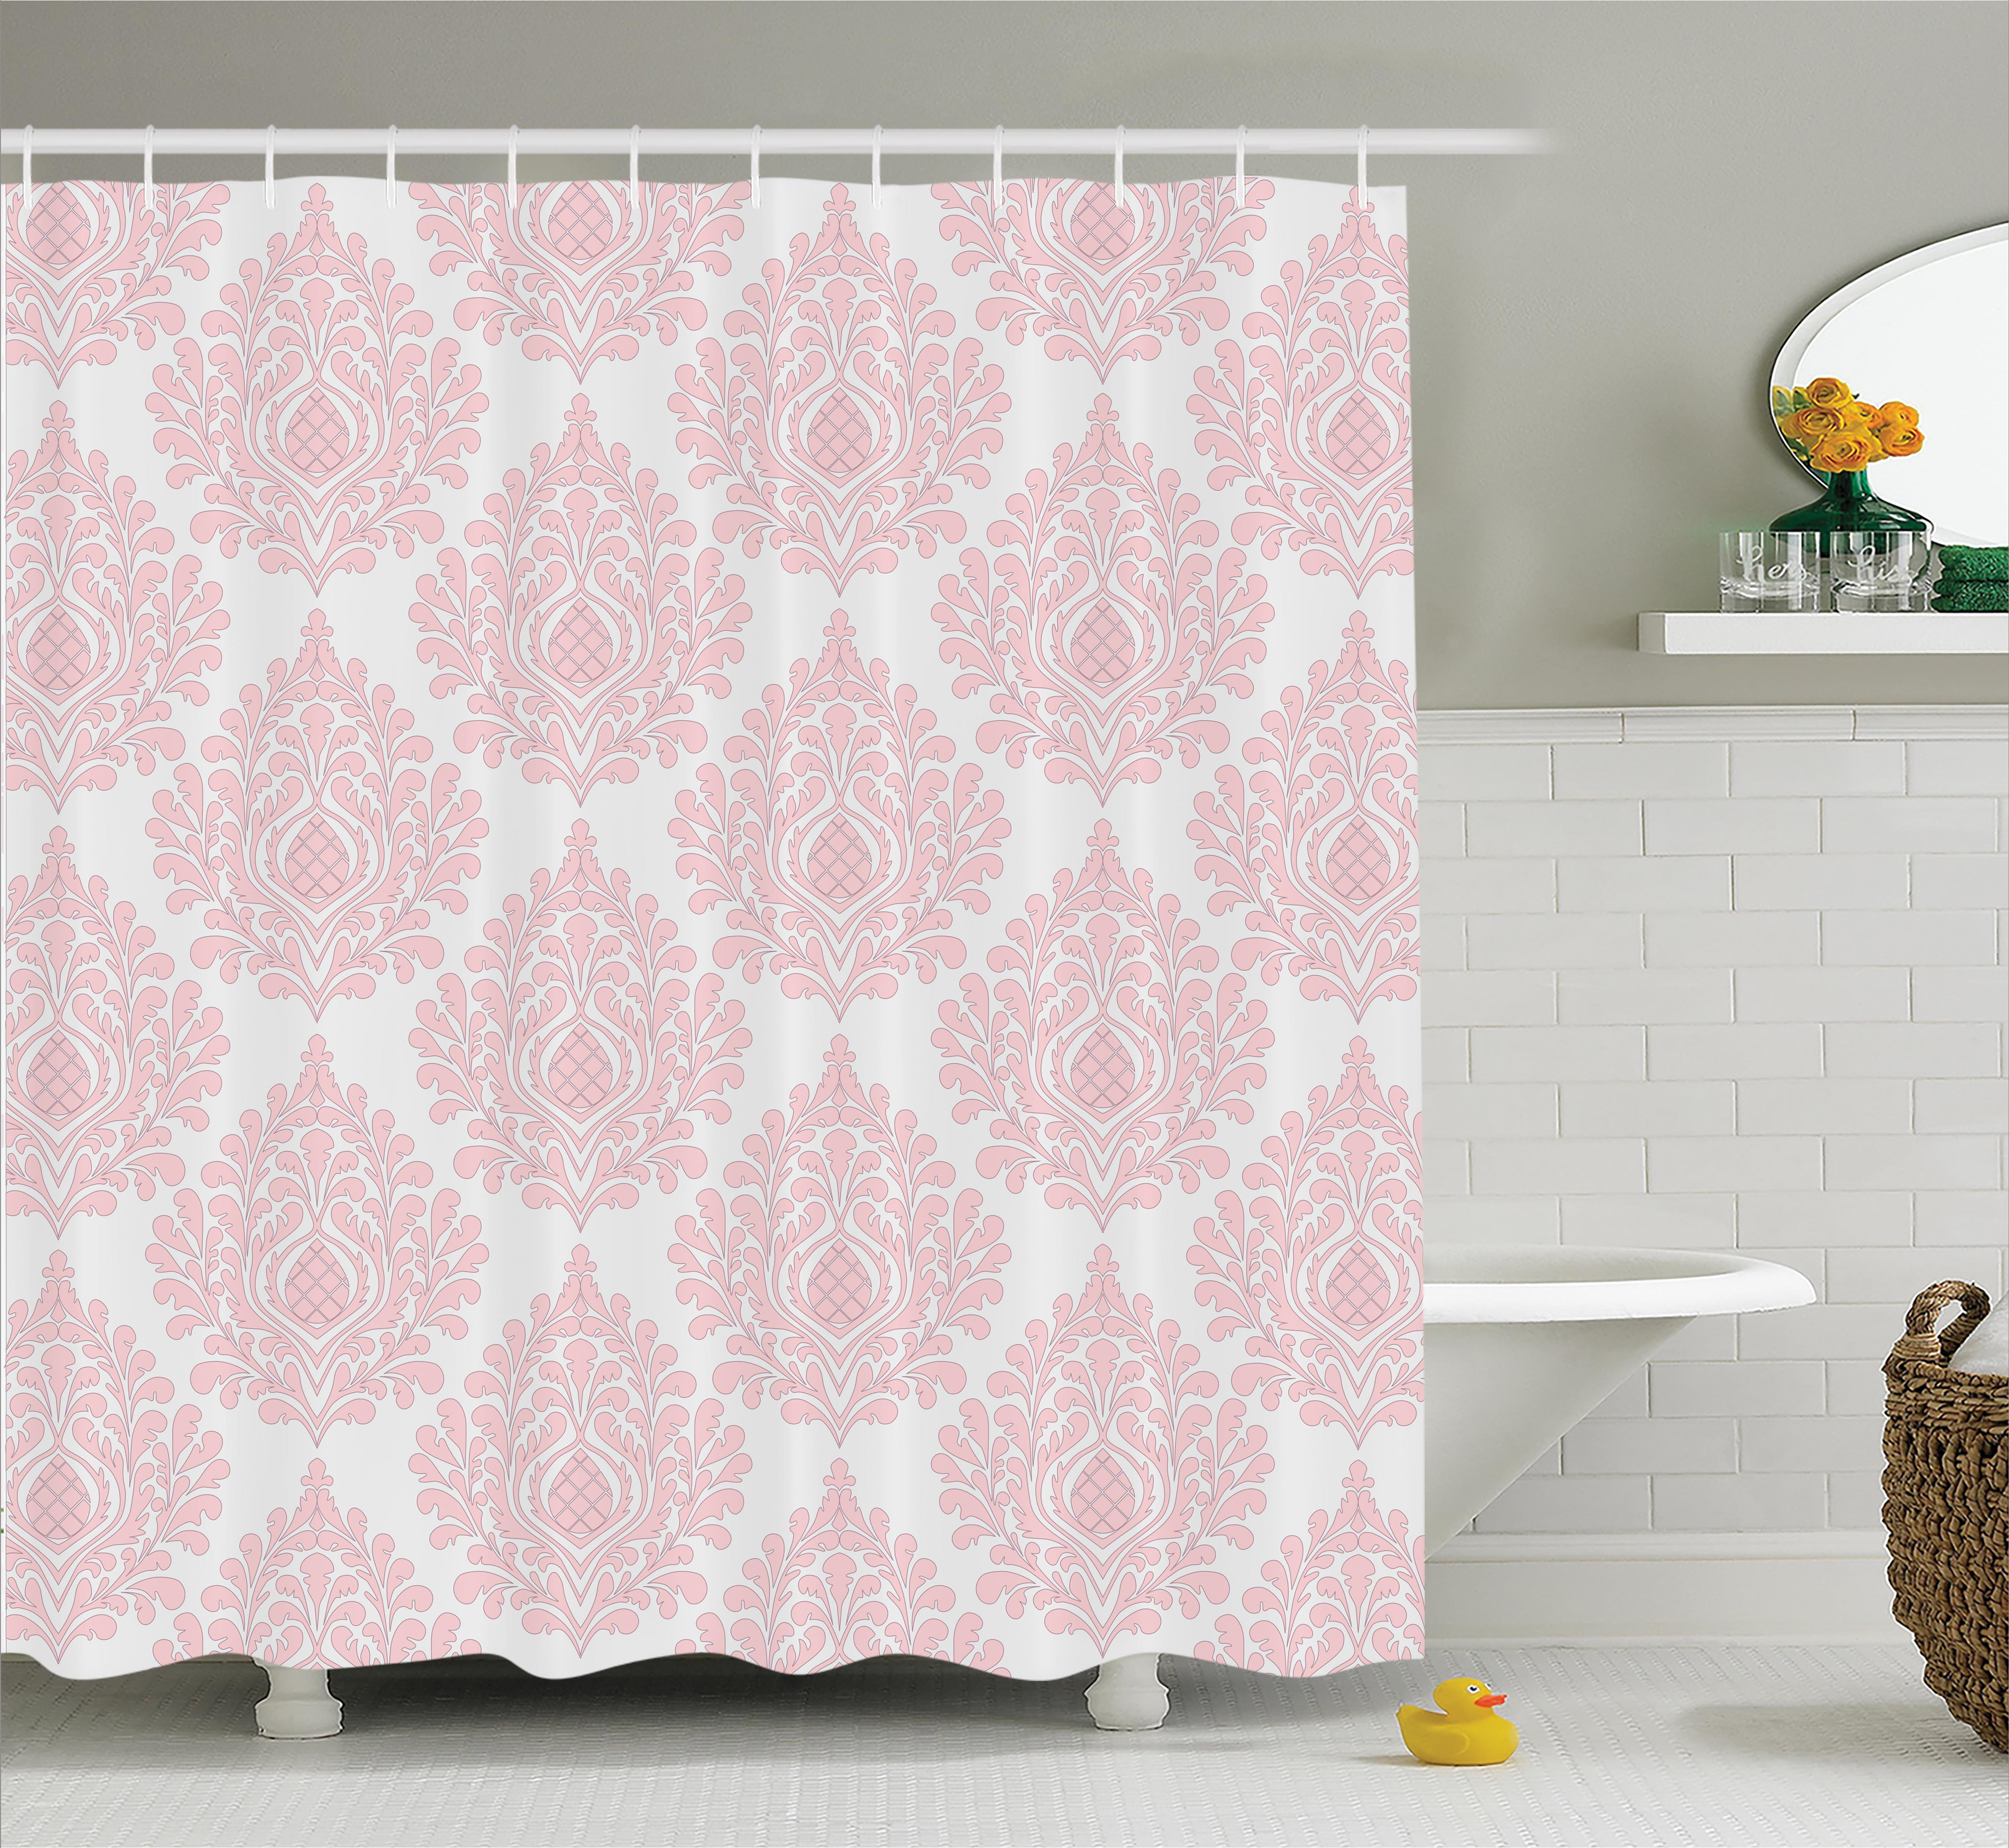 Damask Shower Curtain Set, Damask Pattern Royal Motif Baby Pink Floral Design Victorian Fashioned Home Decor, Bathroom Decor,  Pink White, by Ambesonne